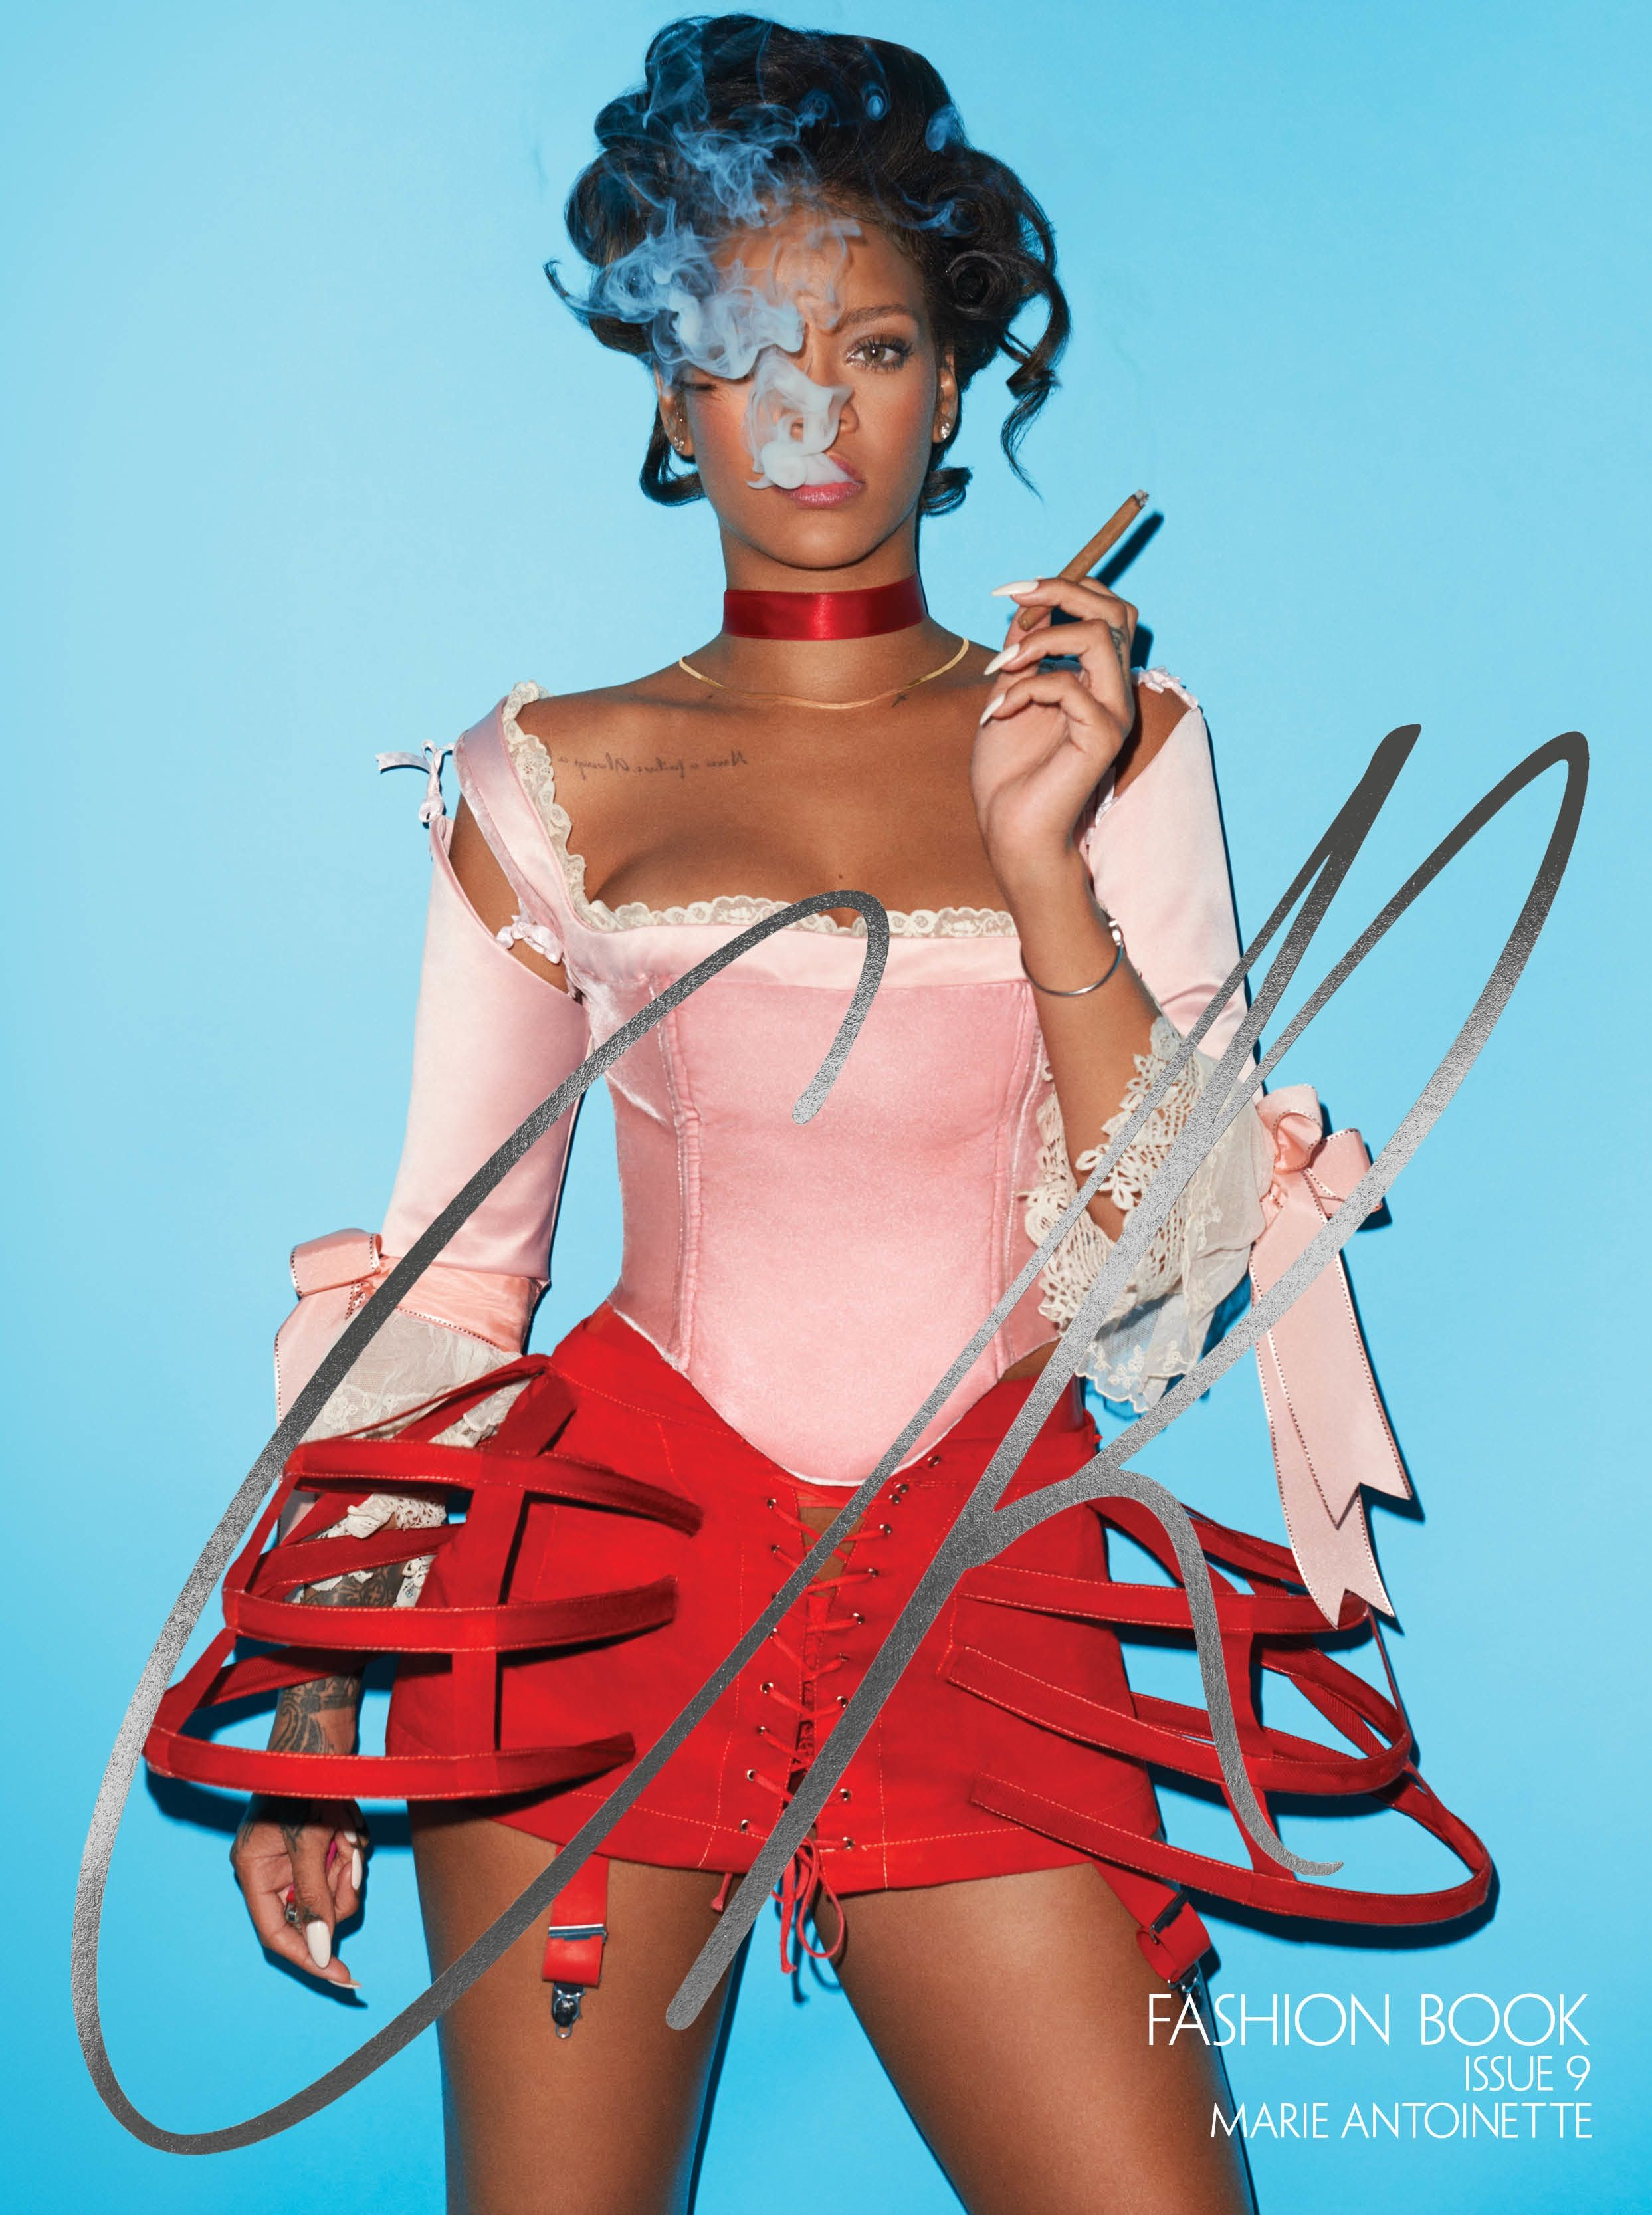 Rihanna CR Fashion Book issue 9 cover